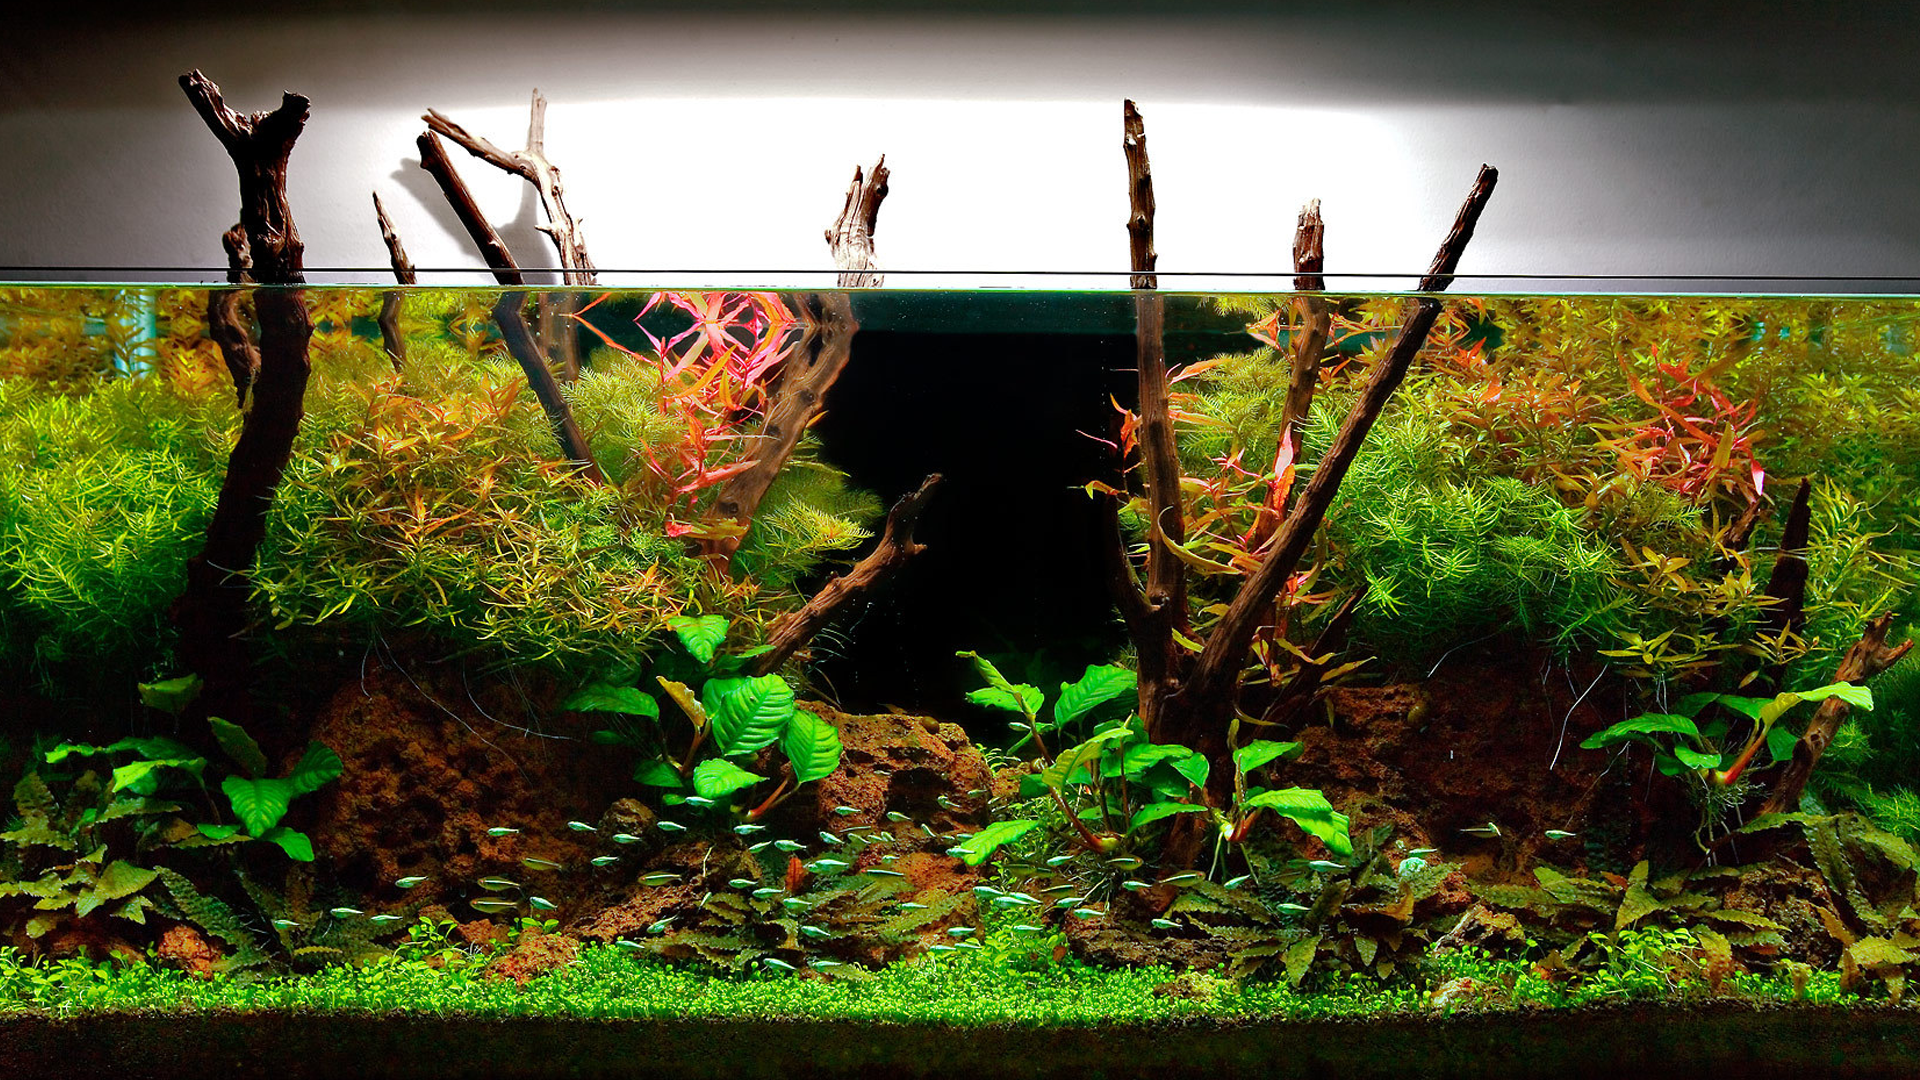 Learn how to choose the best fish for 10 gallon tank setup that